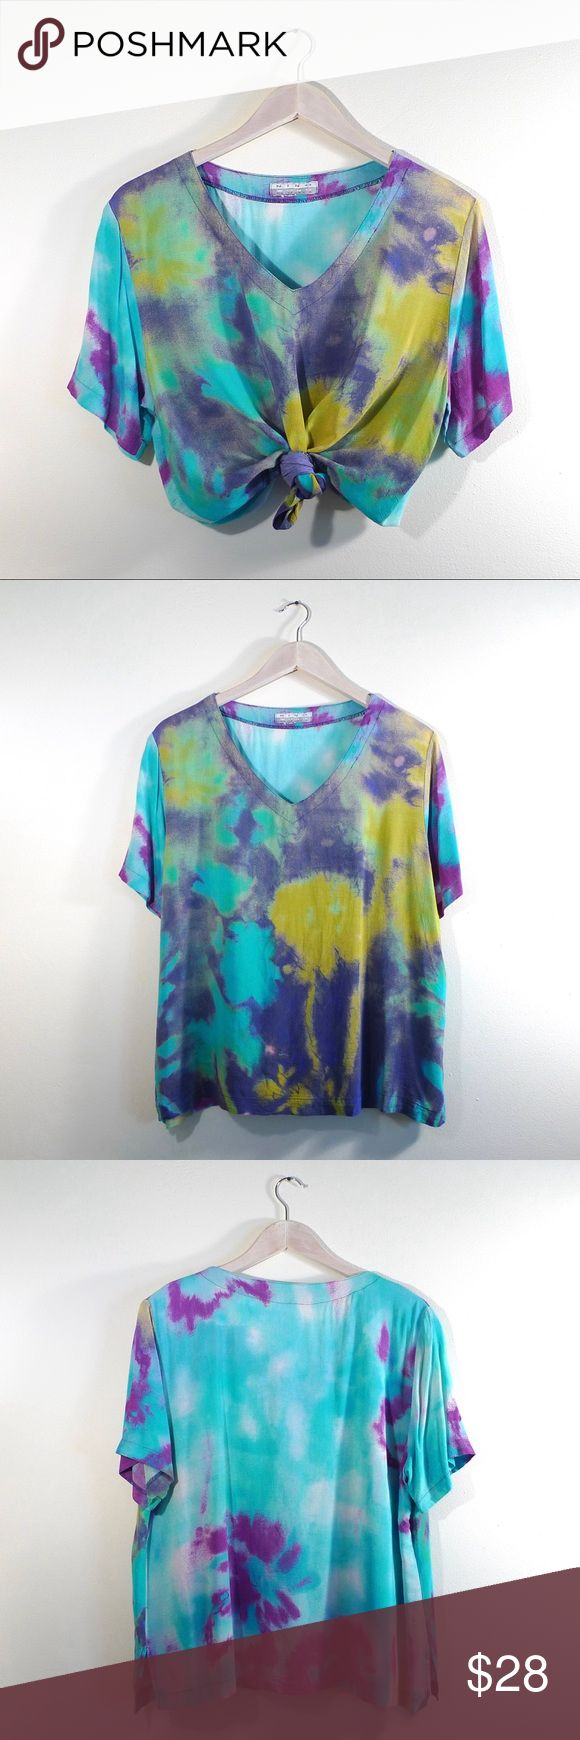 90s Tie Dye Loose Rayon Summer Festival Top The photos really don't do the colors justice! Because....  The purple on the sleeve is more of a vibrant pink! BUT either way, this top is so much fun.  Super unique and definitely one-of-a-kind ; )  I really love the beachy summer vibe to this piece. 💦🐠🌴  Somewhat oversized depending on your frame. I'd list this as a loose Medium.  Will be updating listing with exact measurements asap.  Condition: Excellent Vintage Tops